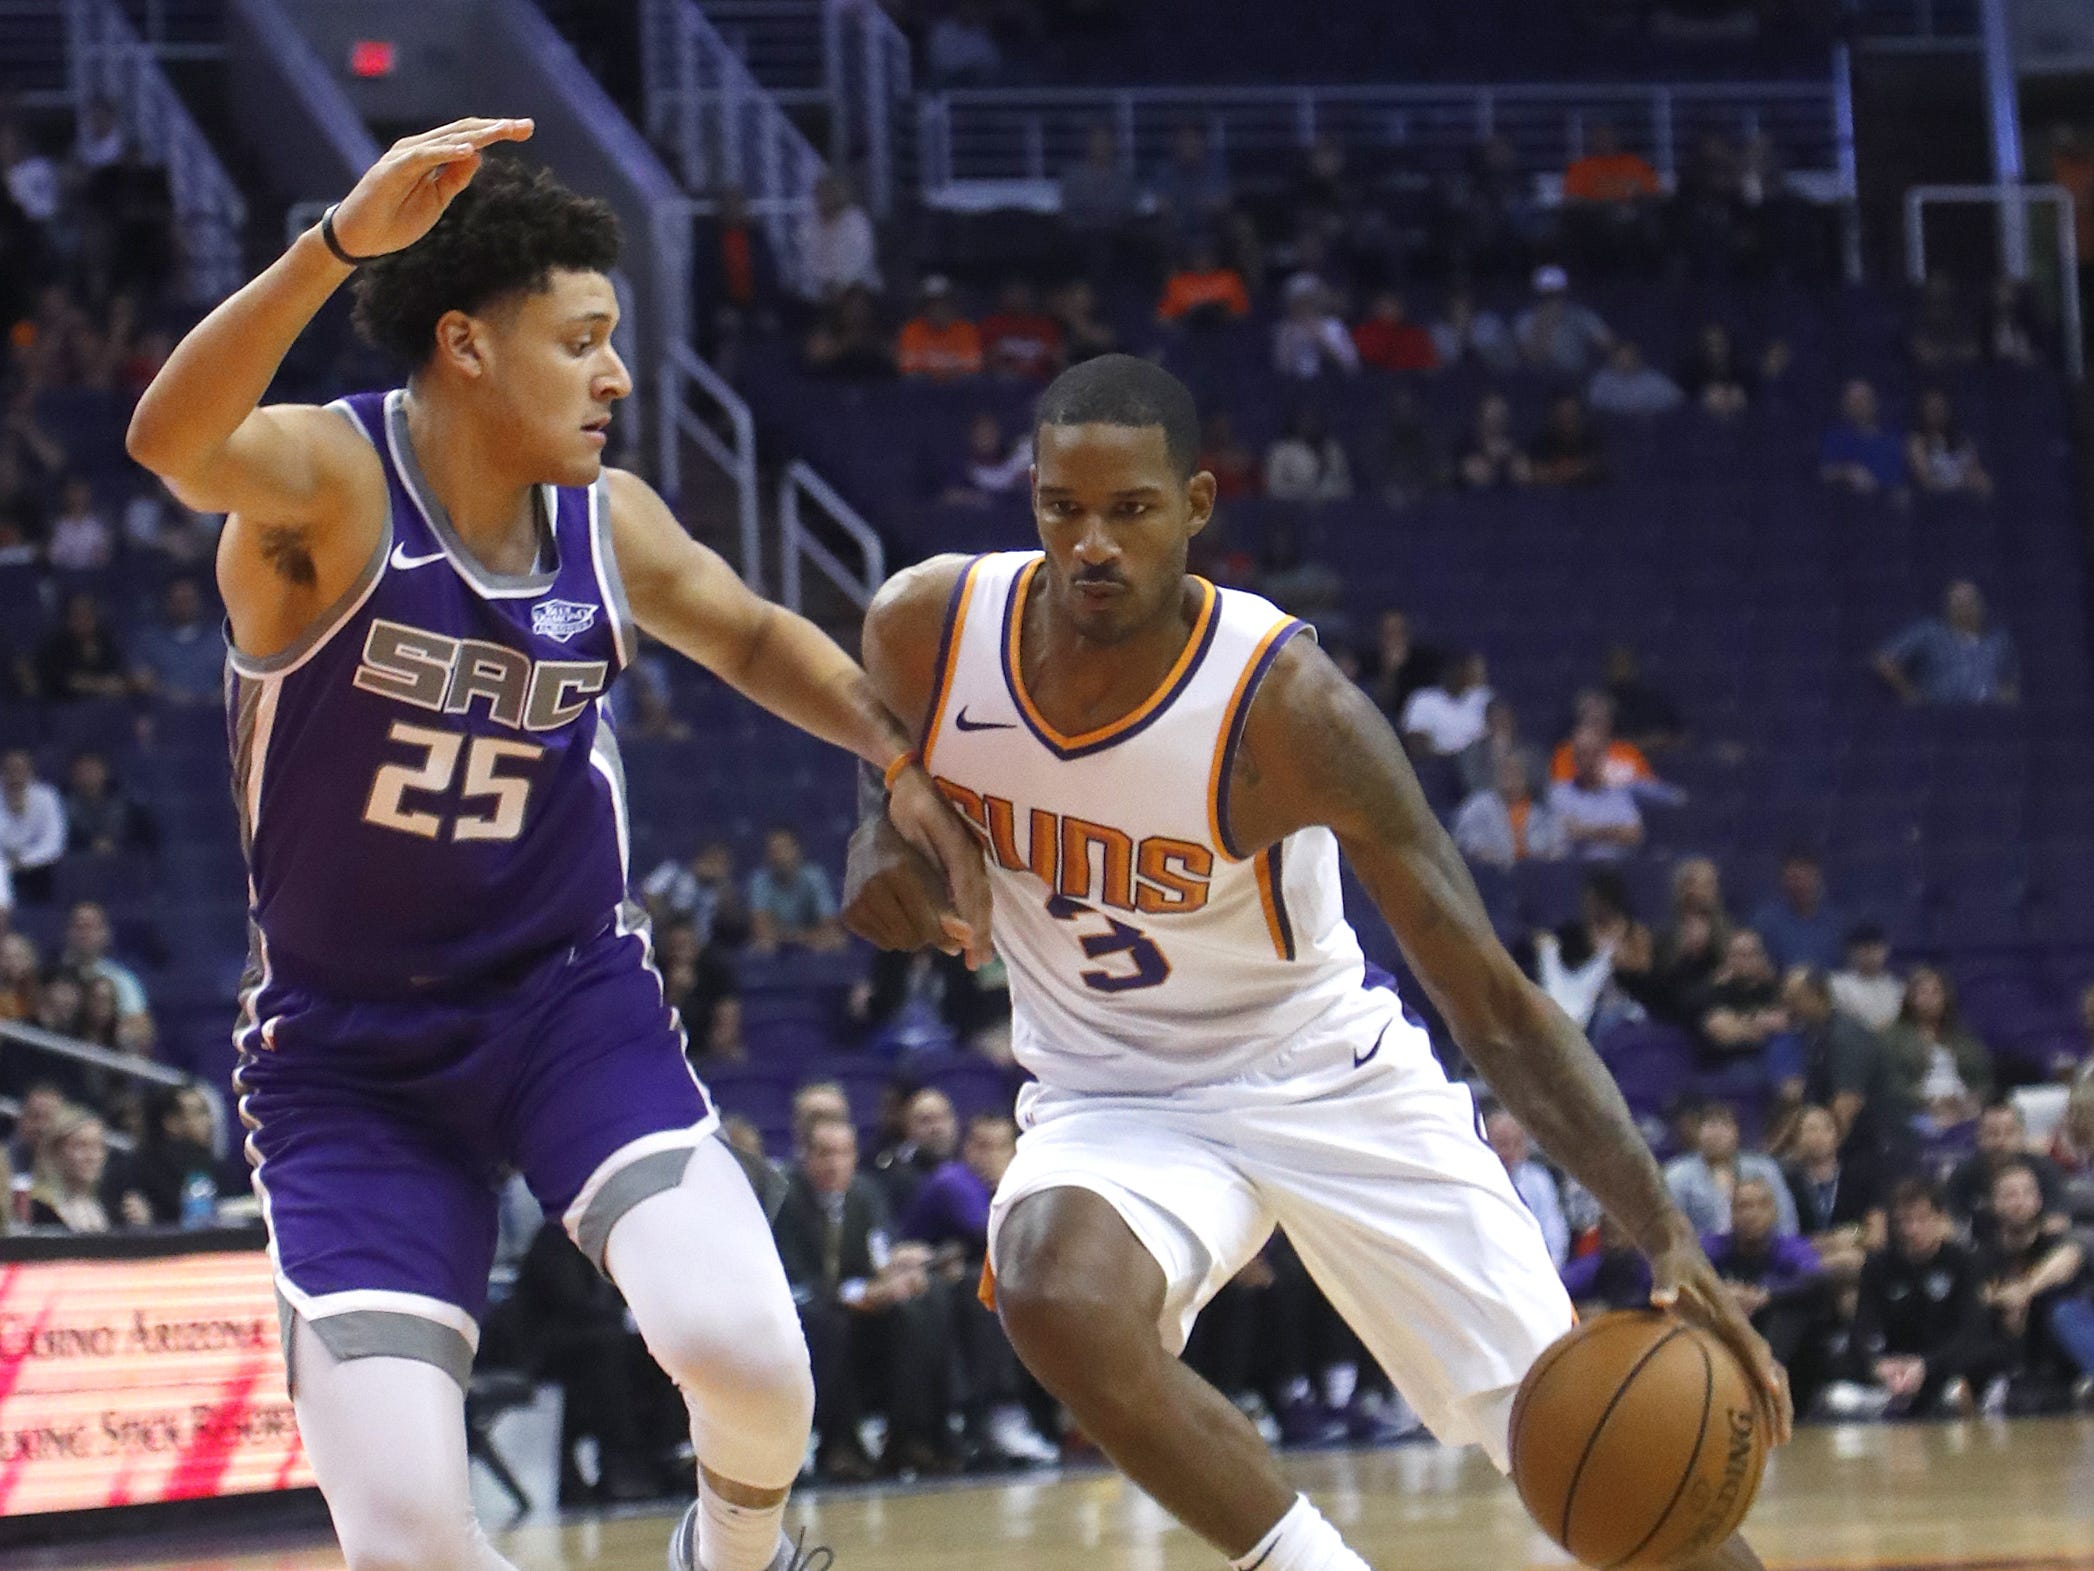 Suns' Trevor Ariza (3) drives against Kings' Justin Jackson (25) during the first half at Talking Stick Resort Arena in Phoenix, Ariz. on October 1, 2018.